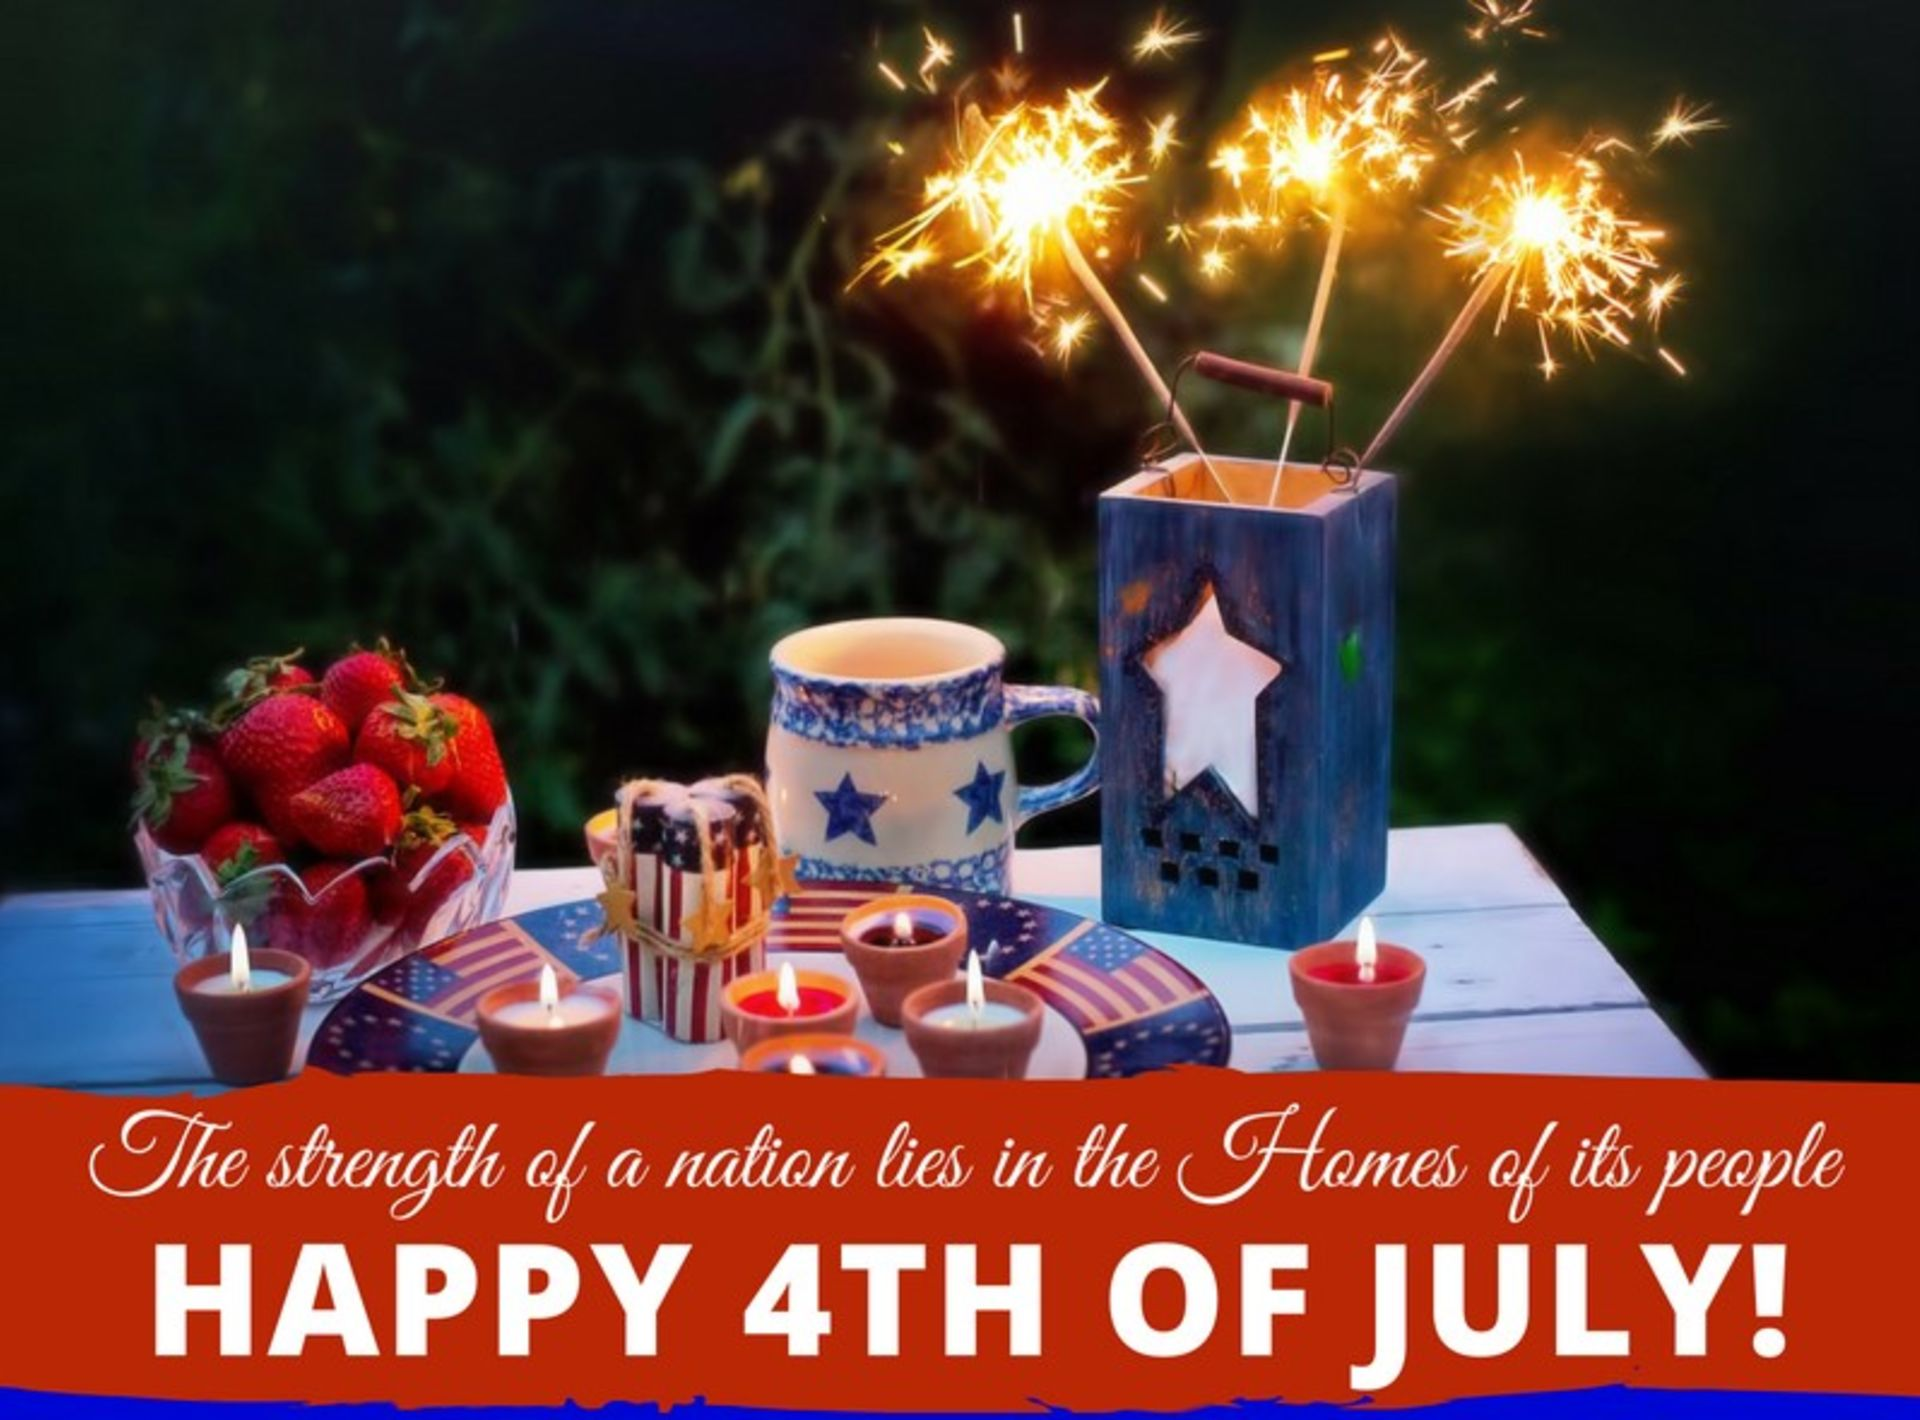 Celebrate Independence Day in Palm Beach County